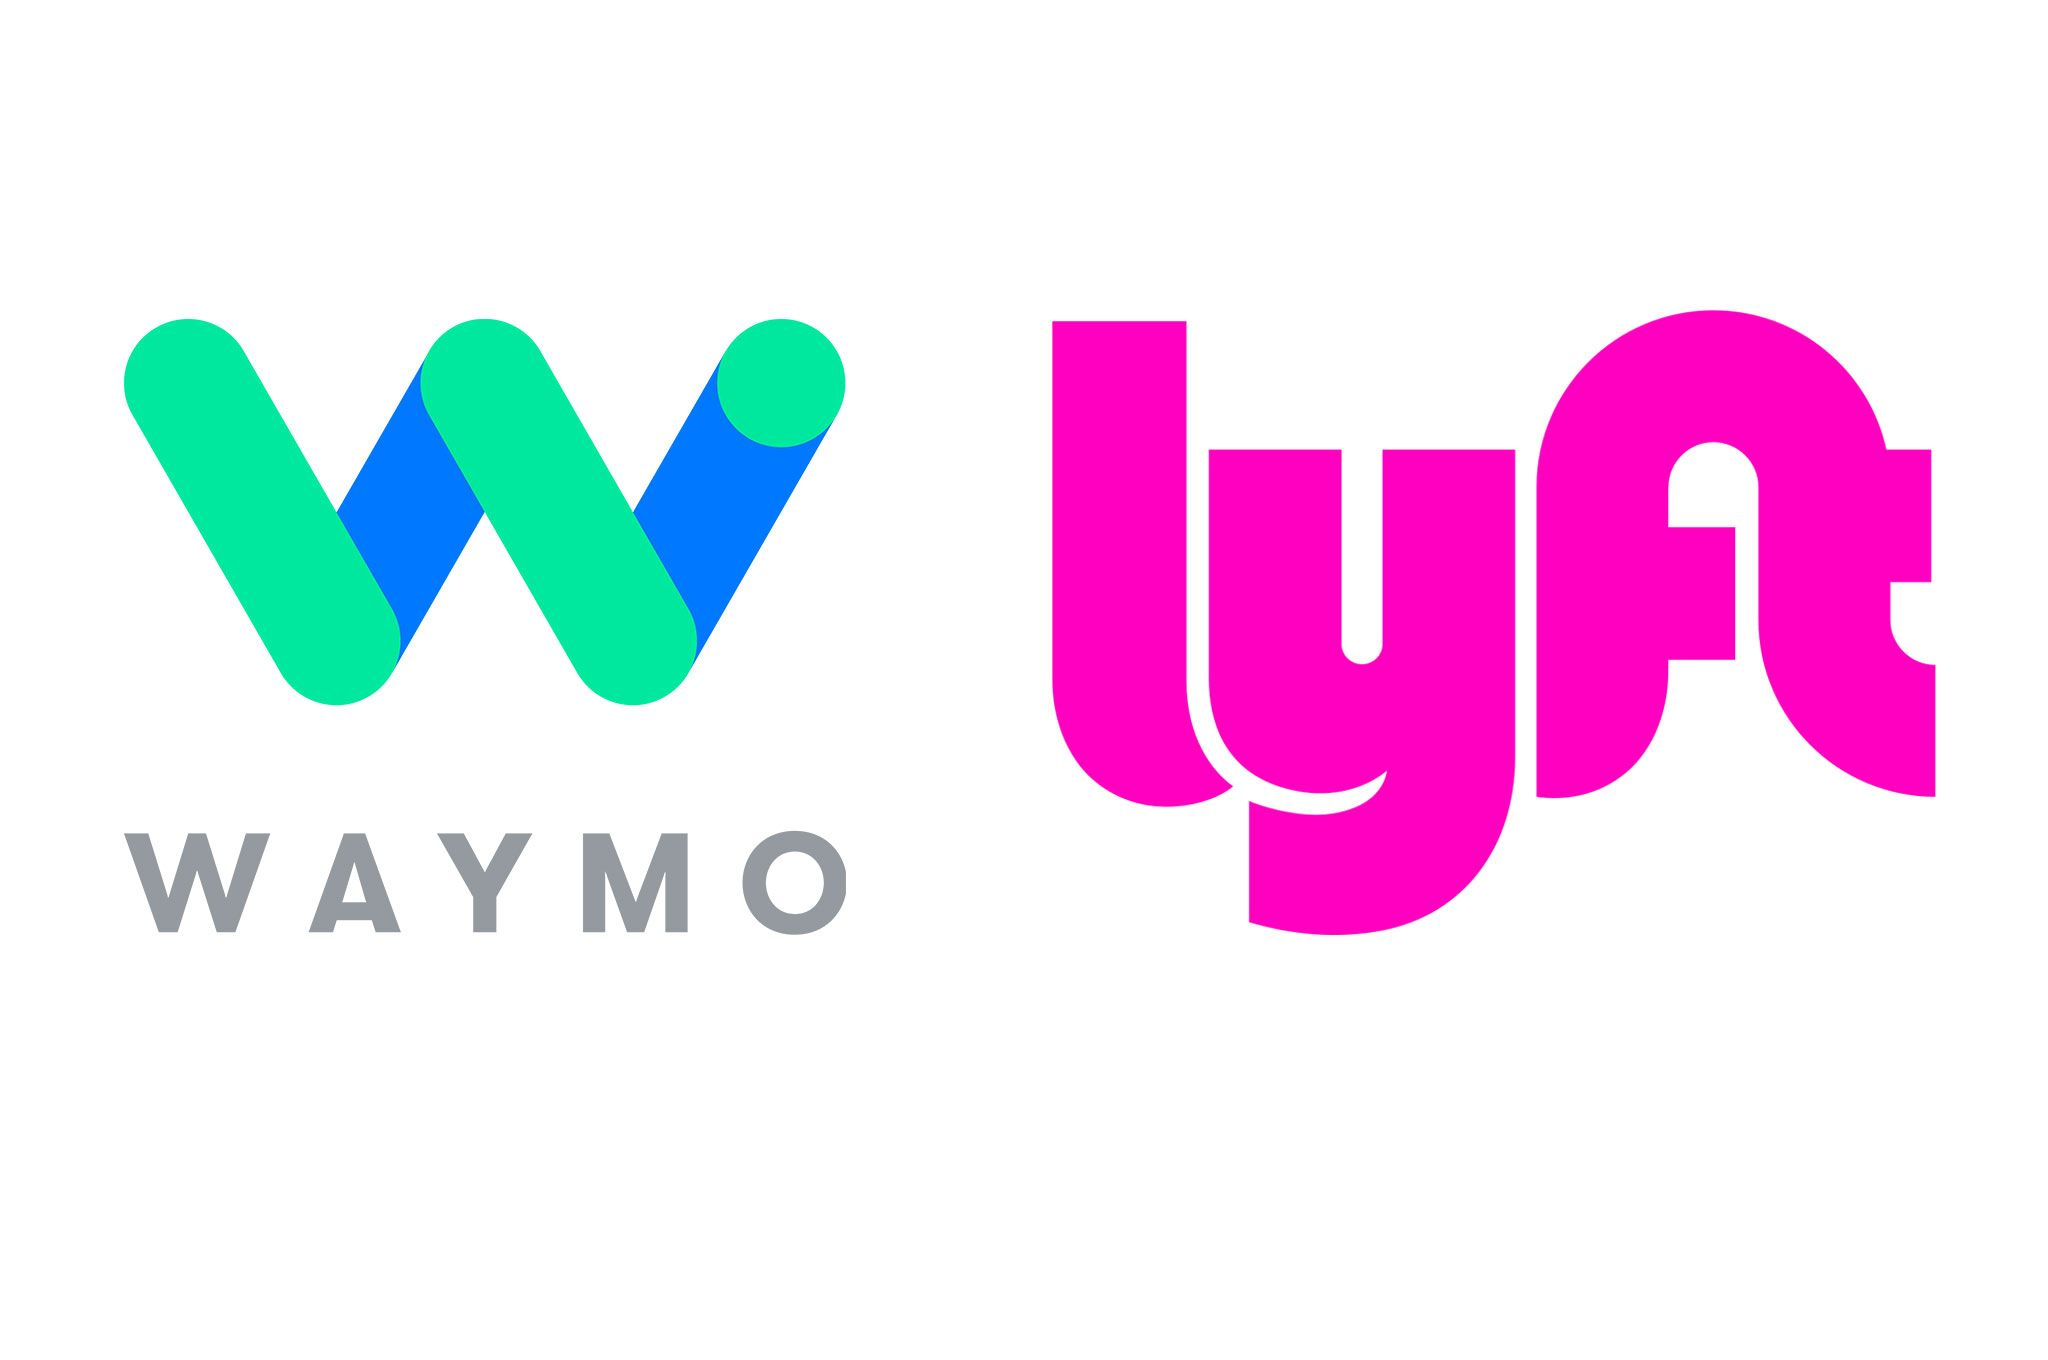 Waymo Logo - Waymo signs a contract with Lyft to become the biggest Uber's ...